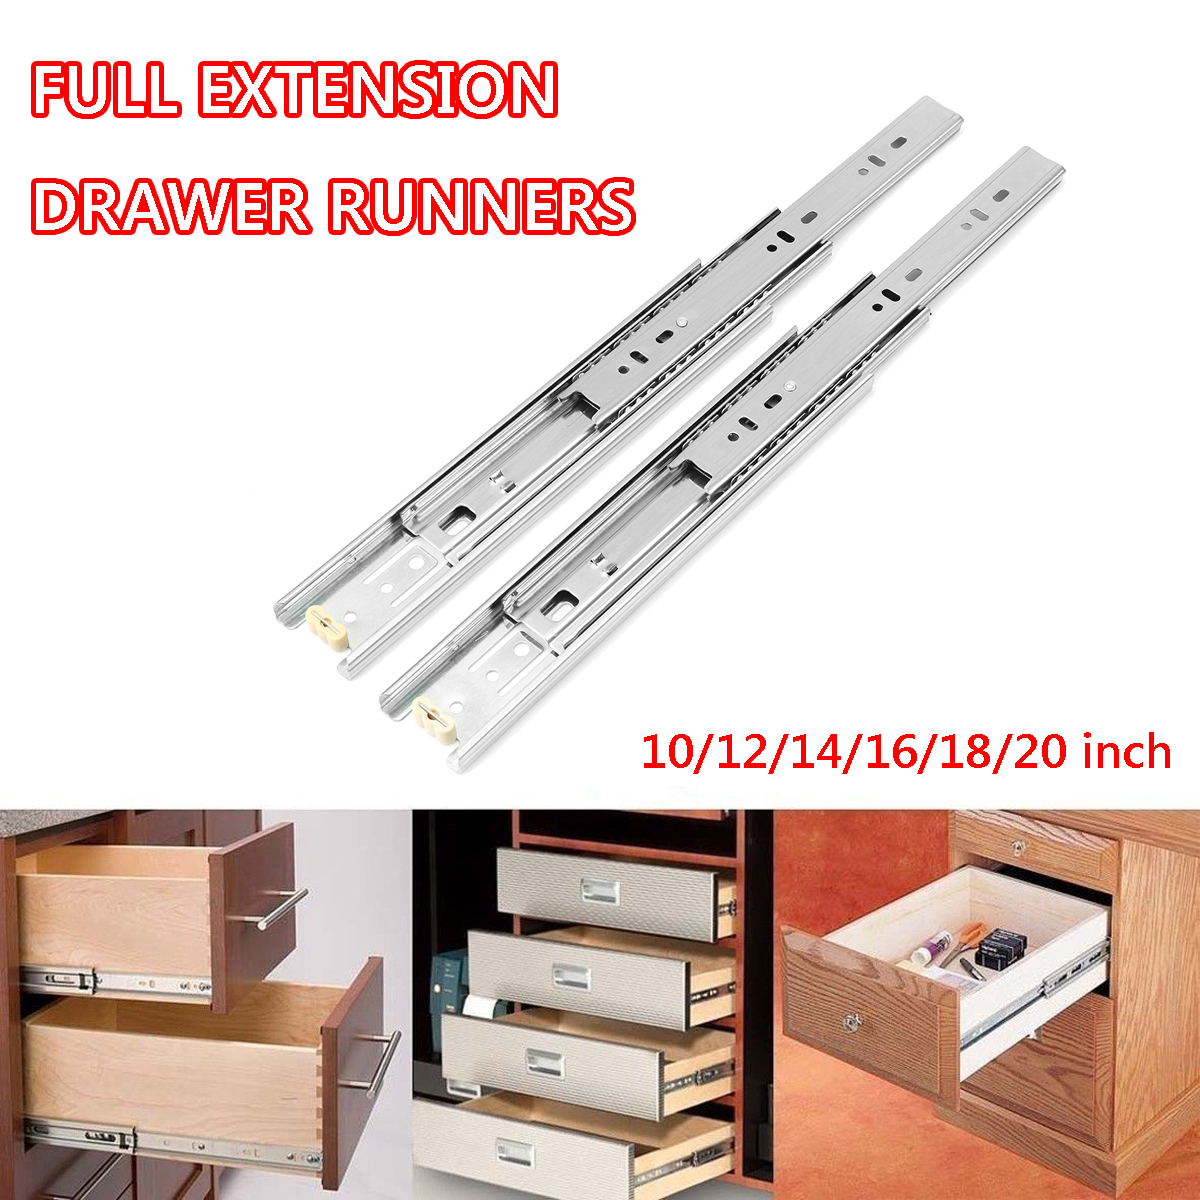 2Pcs 10-20Inch 45mm Full Extension Close Ball Bearing Drawer Runners Slides Cabinet Guide Rail Slide